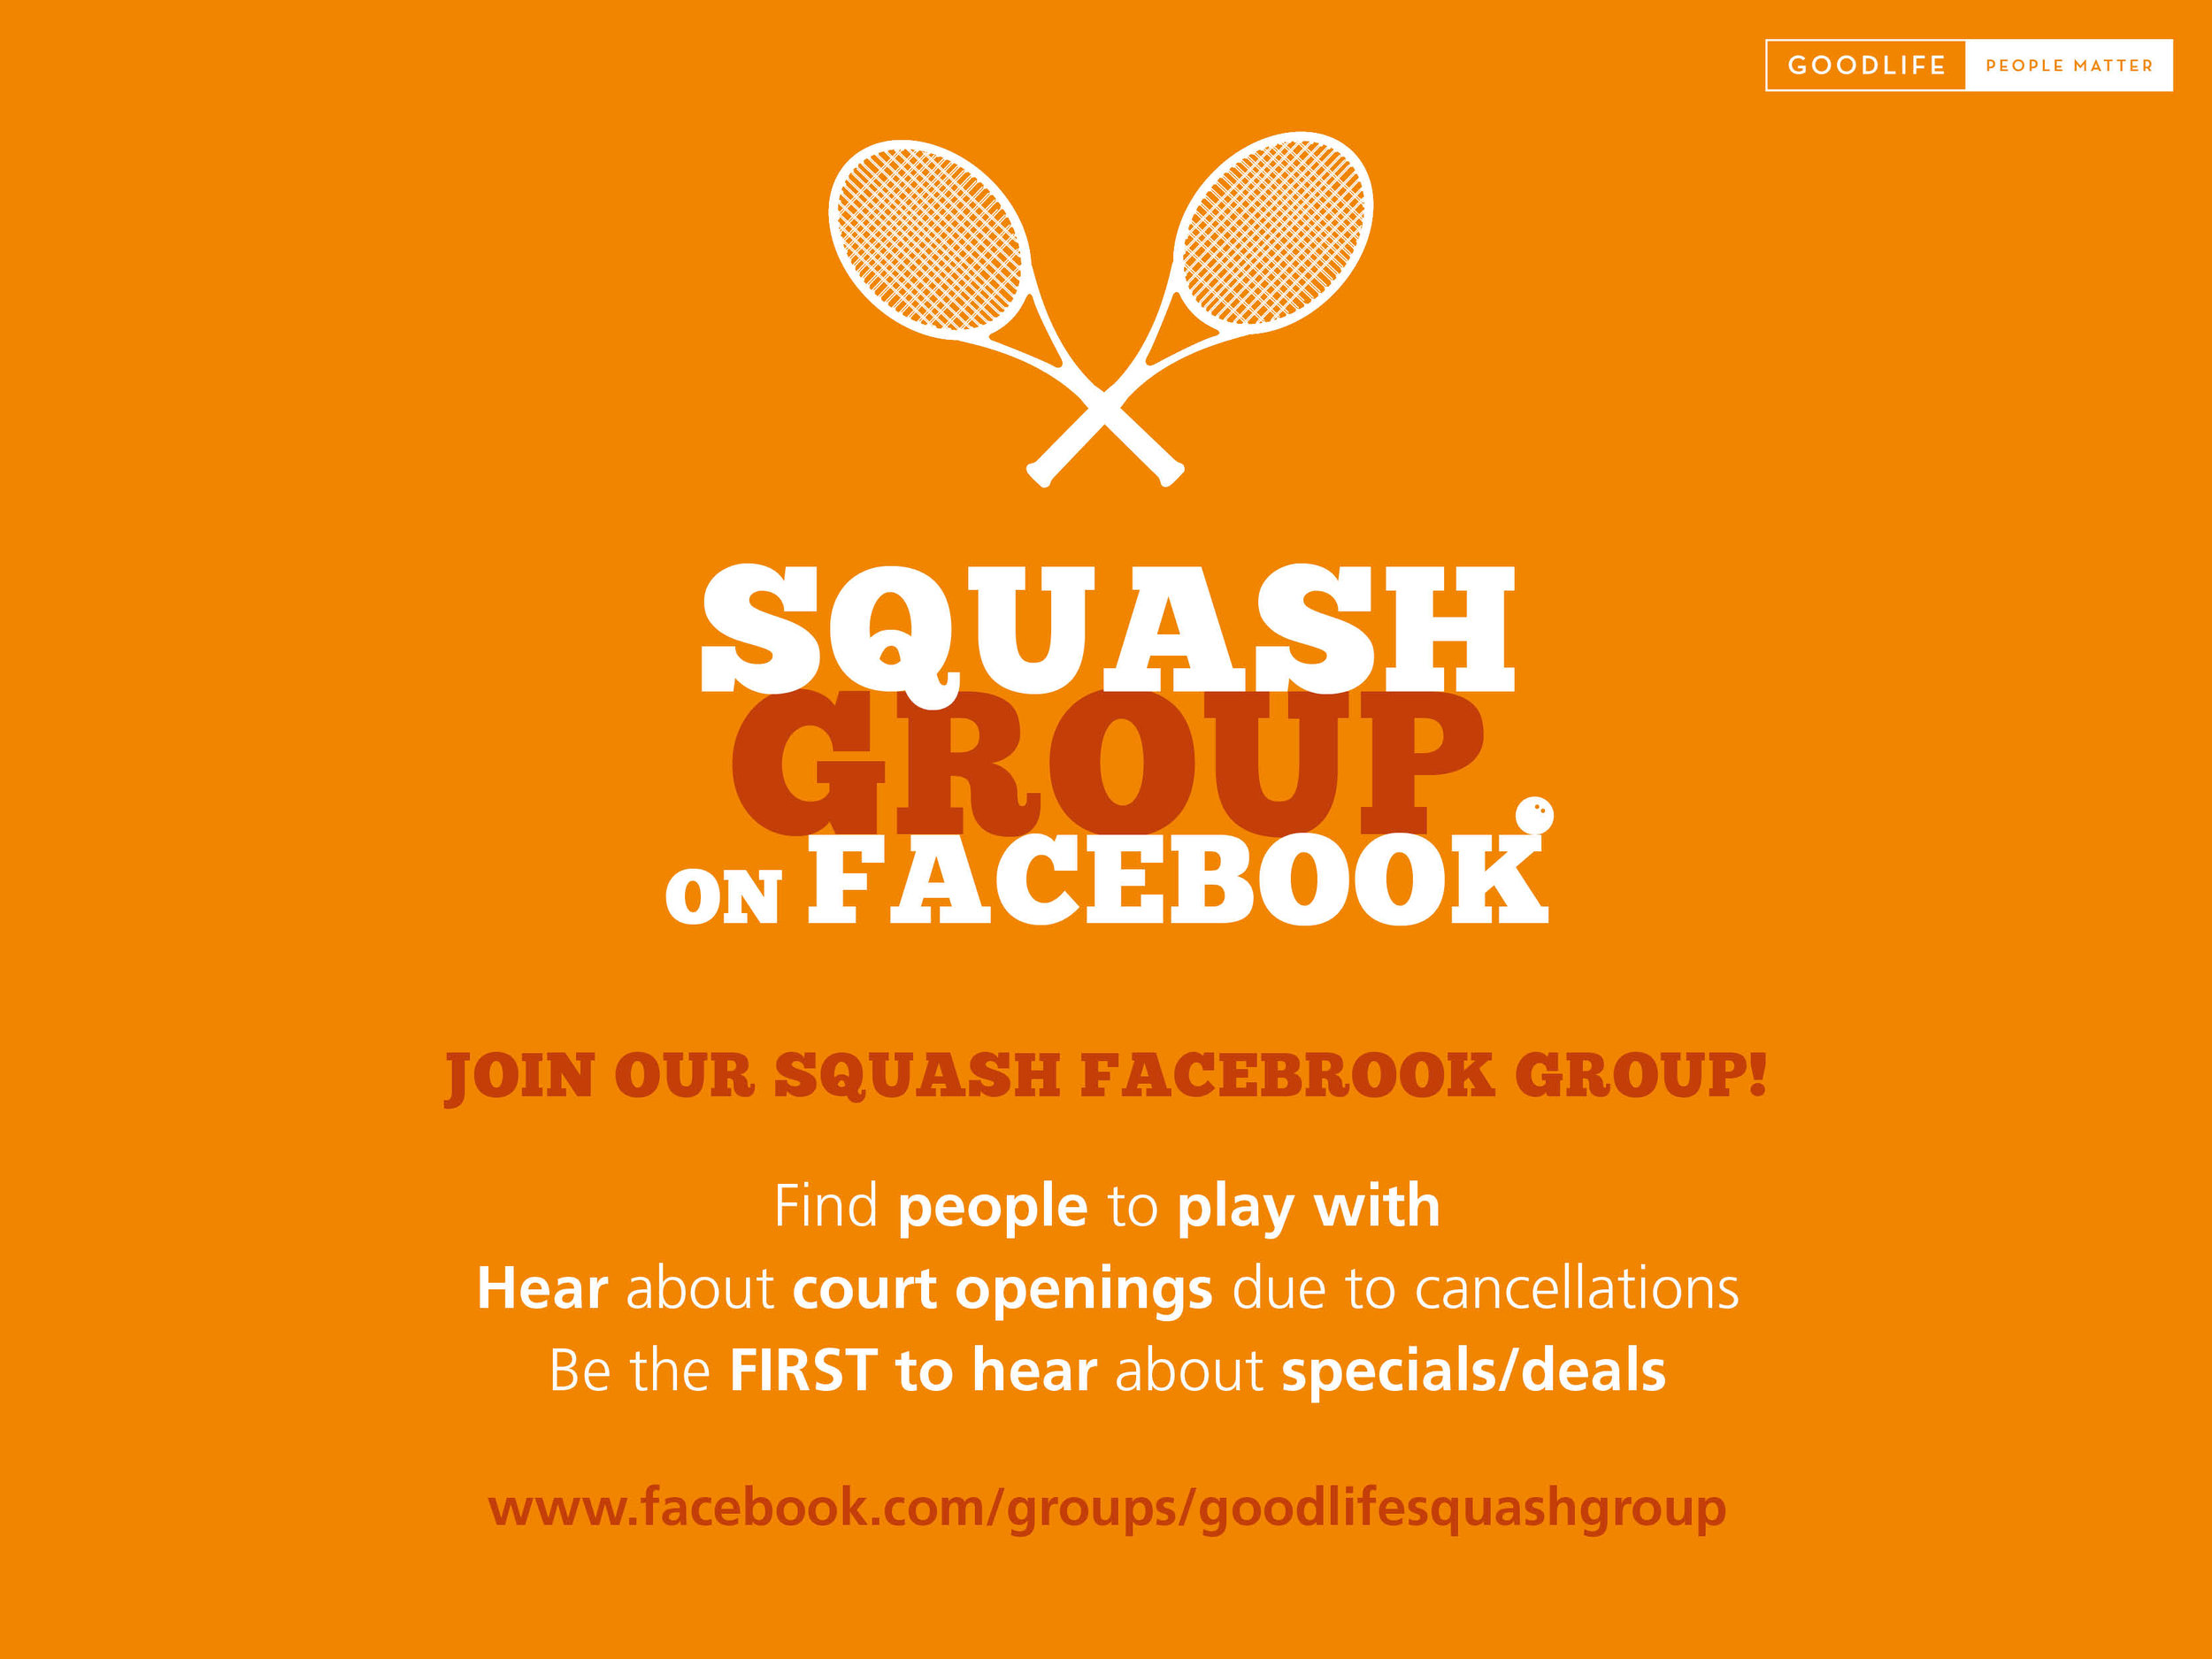 Click on the image to go directly to the squash group page.